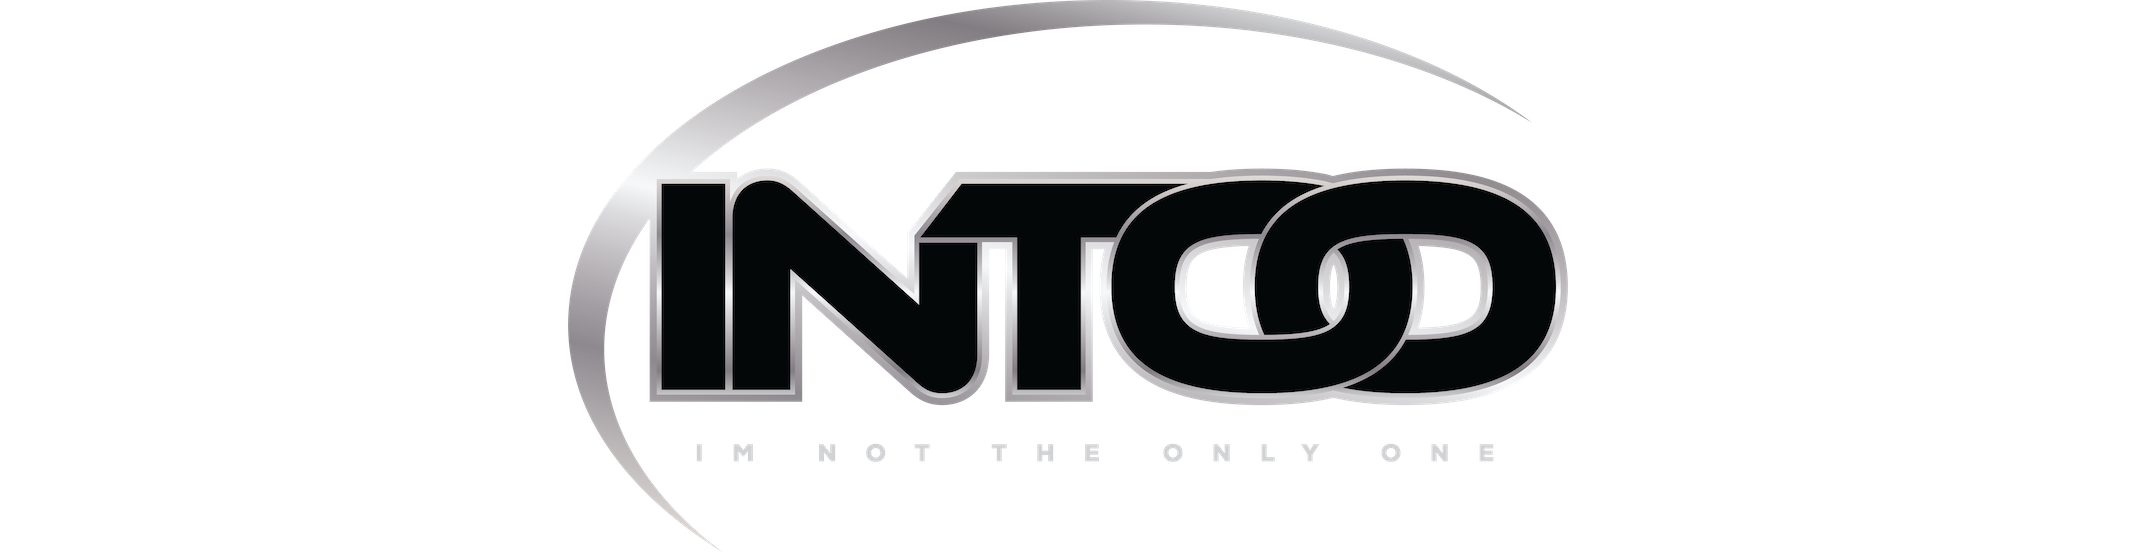 I'm Not The Only One… Logo